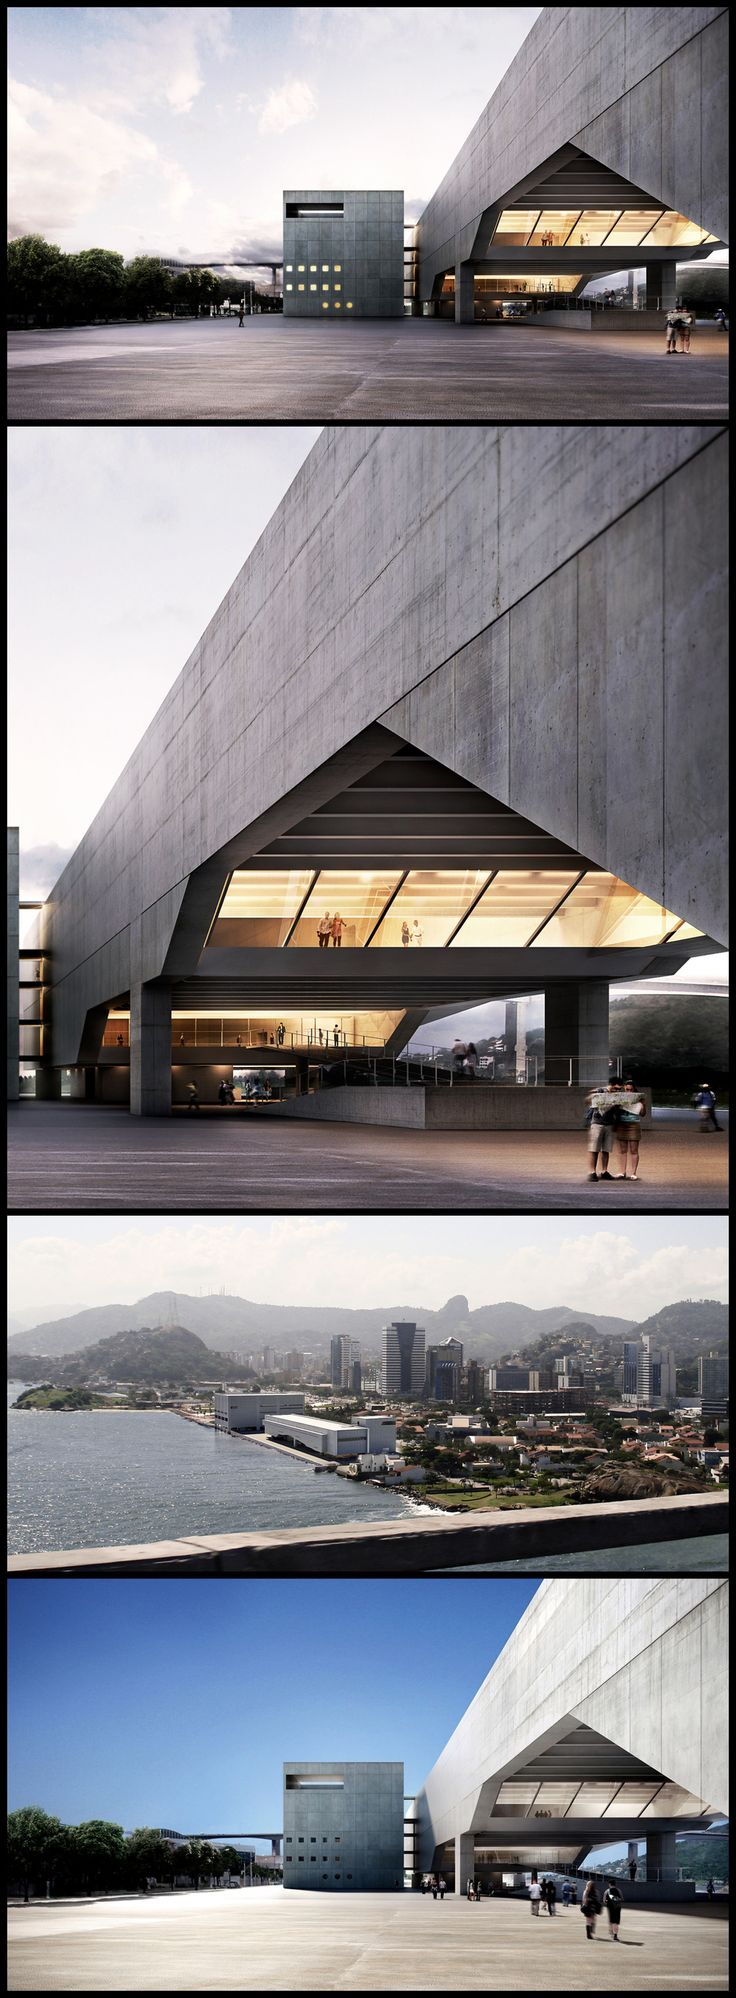 The building was designed by Paulo Mendes da Rocha and Metro Arquitetos Associados, and comprised of a museum and a theater equipped to host large scale art events.